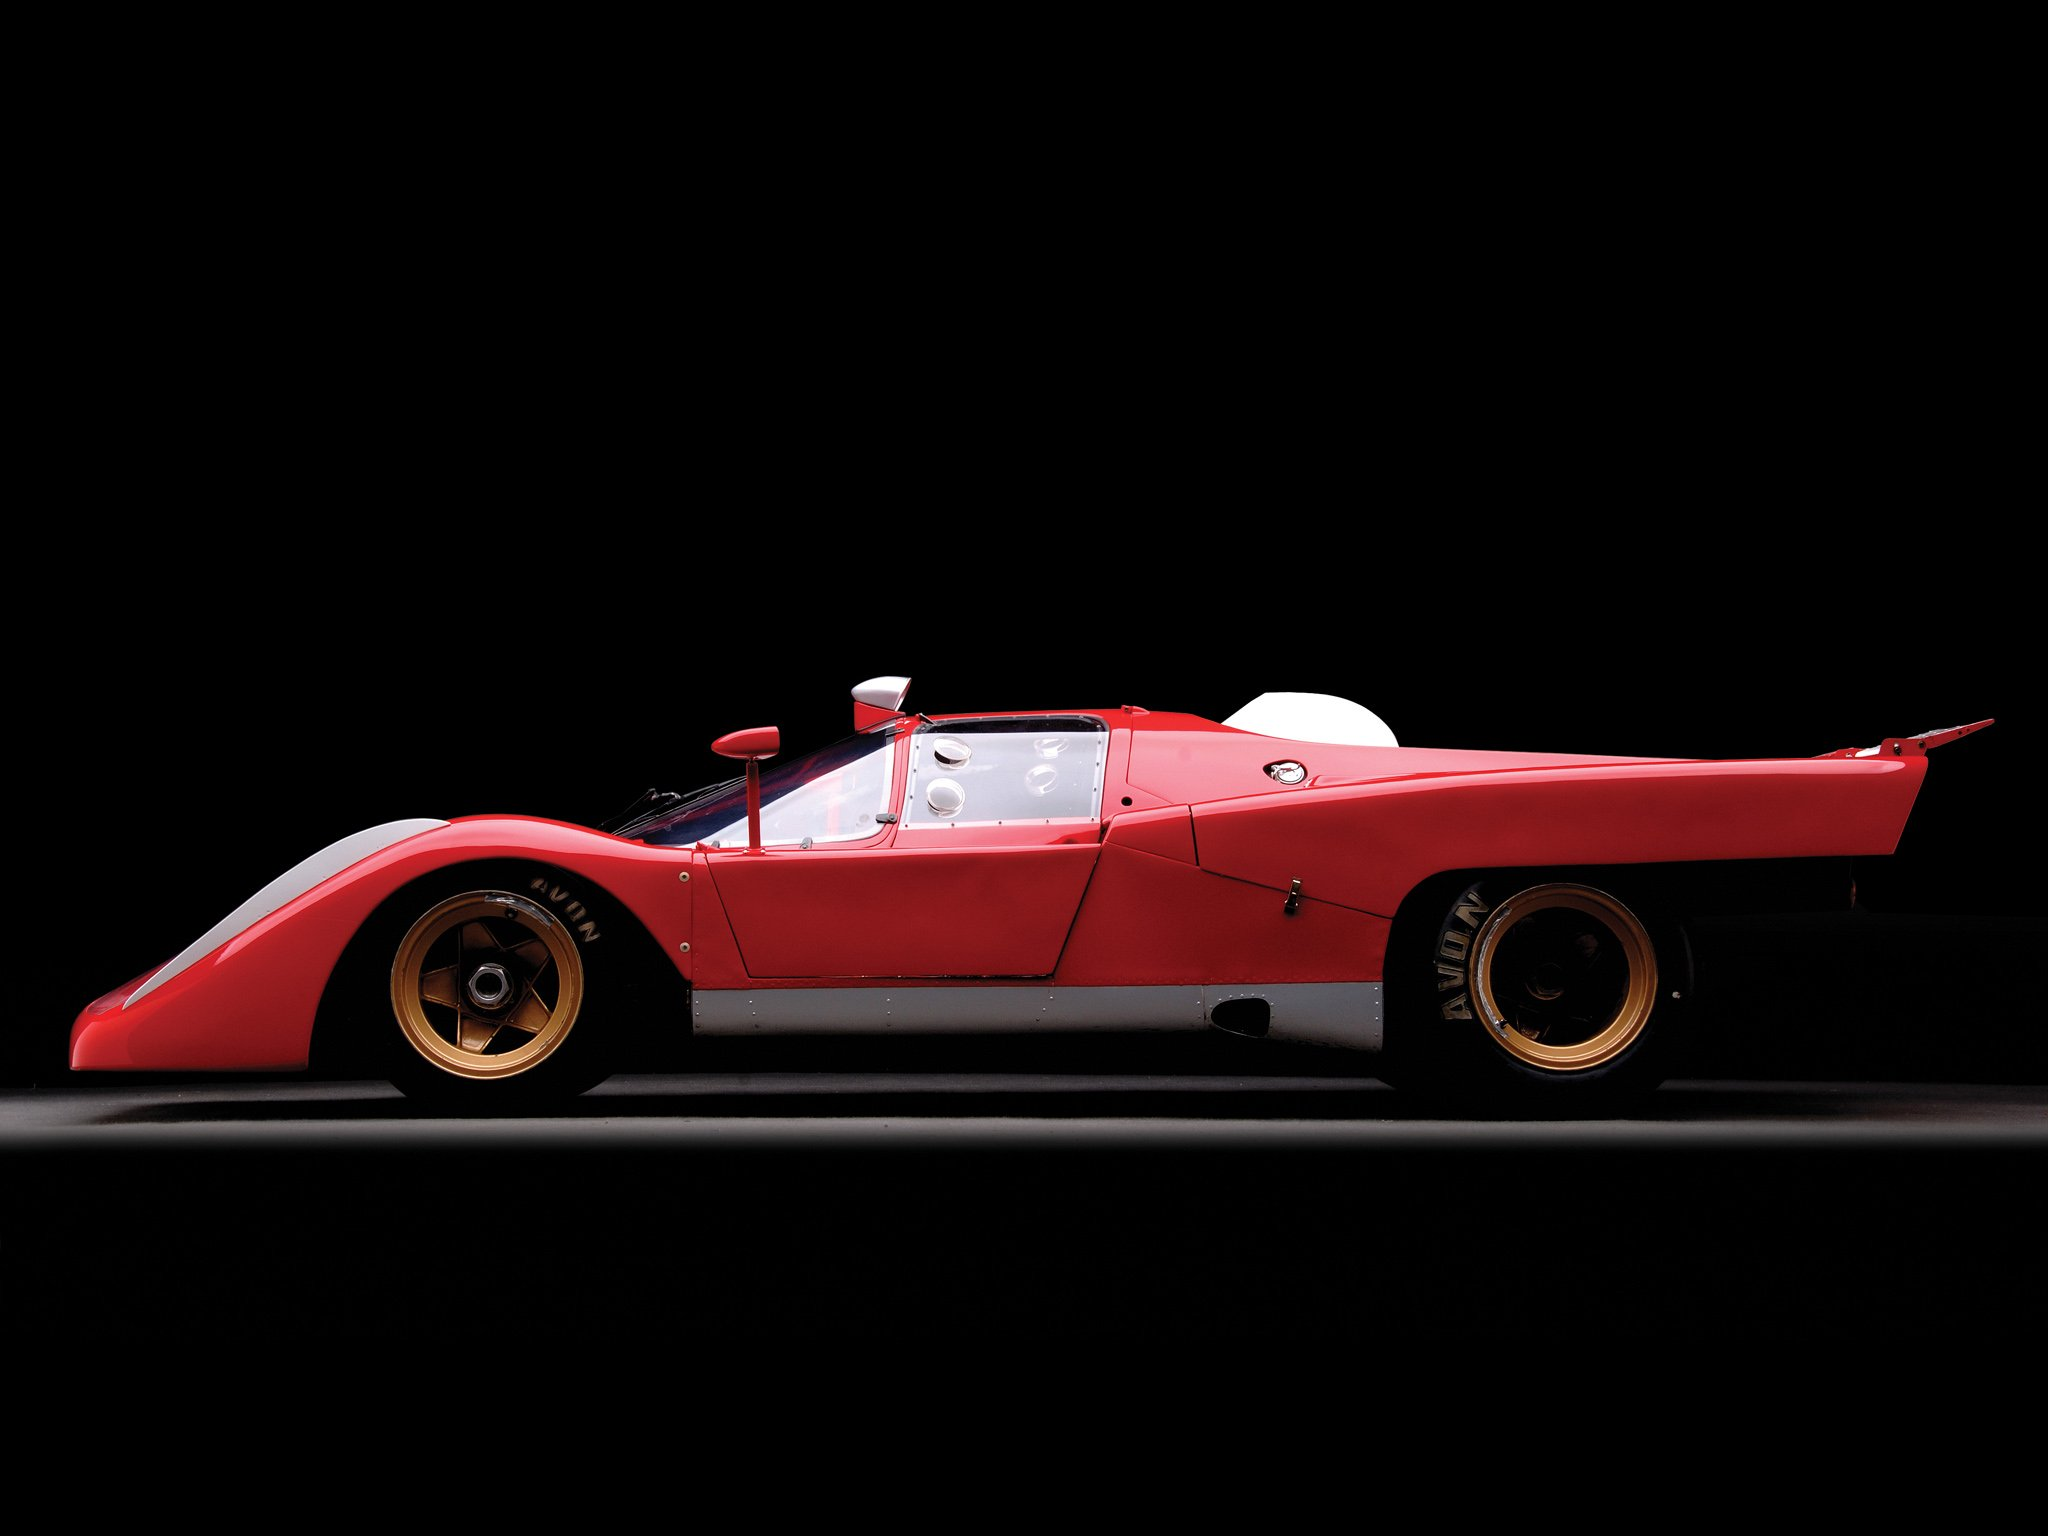 1970 ferrari 512 m le mans grand prix race racing classic 512m wallpaper 2048x1536 504113. Black Bedroom Furniture Sets. Home Design Ideas